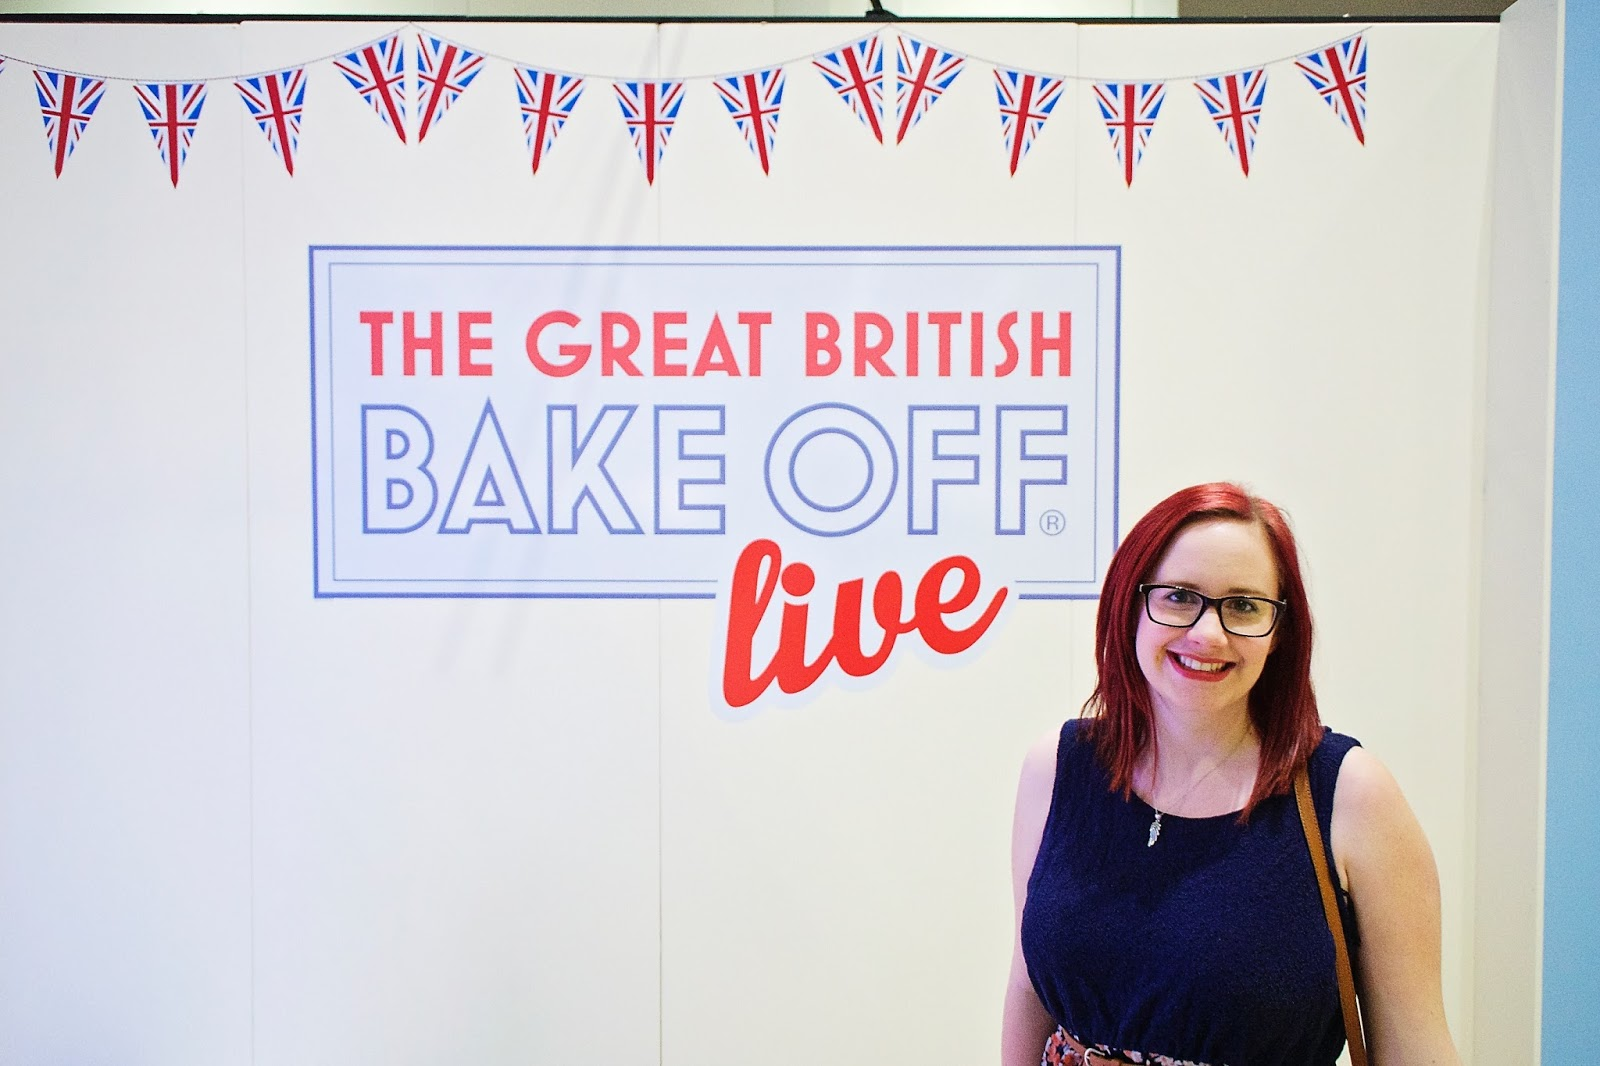 Me standing in front of the Great British Bake Off Live sign